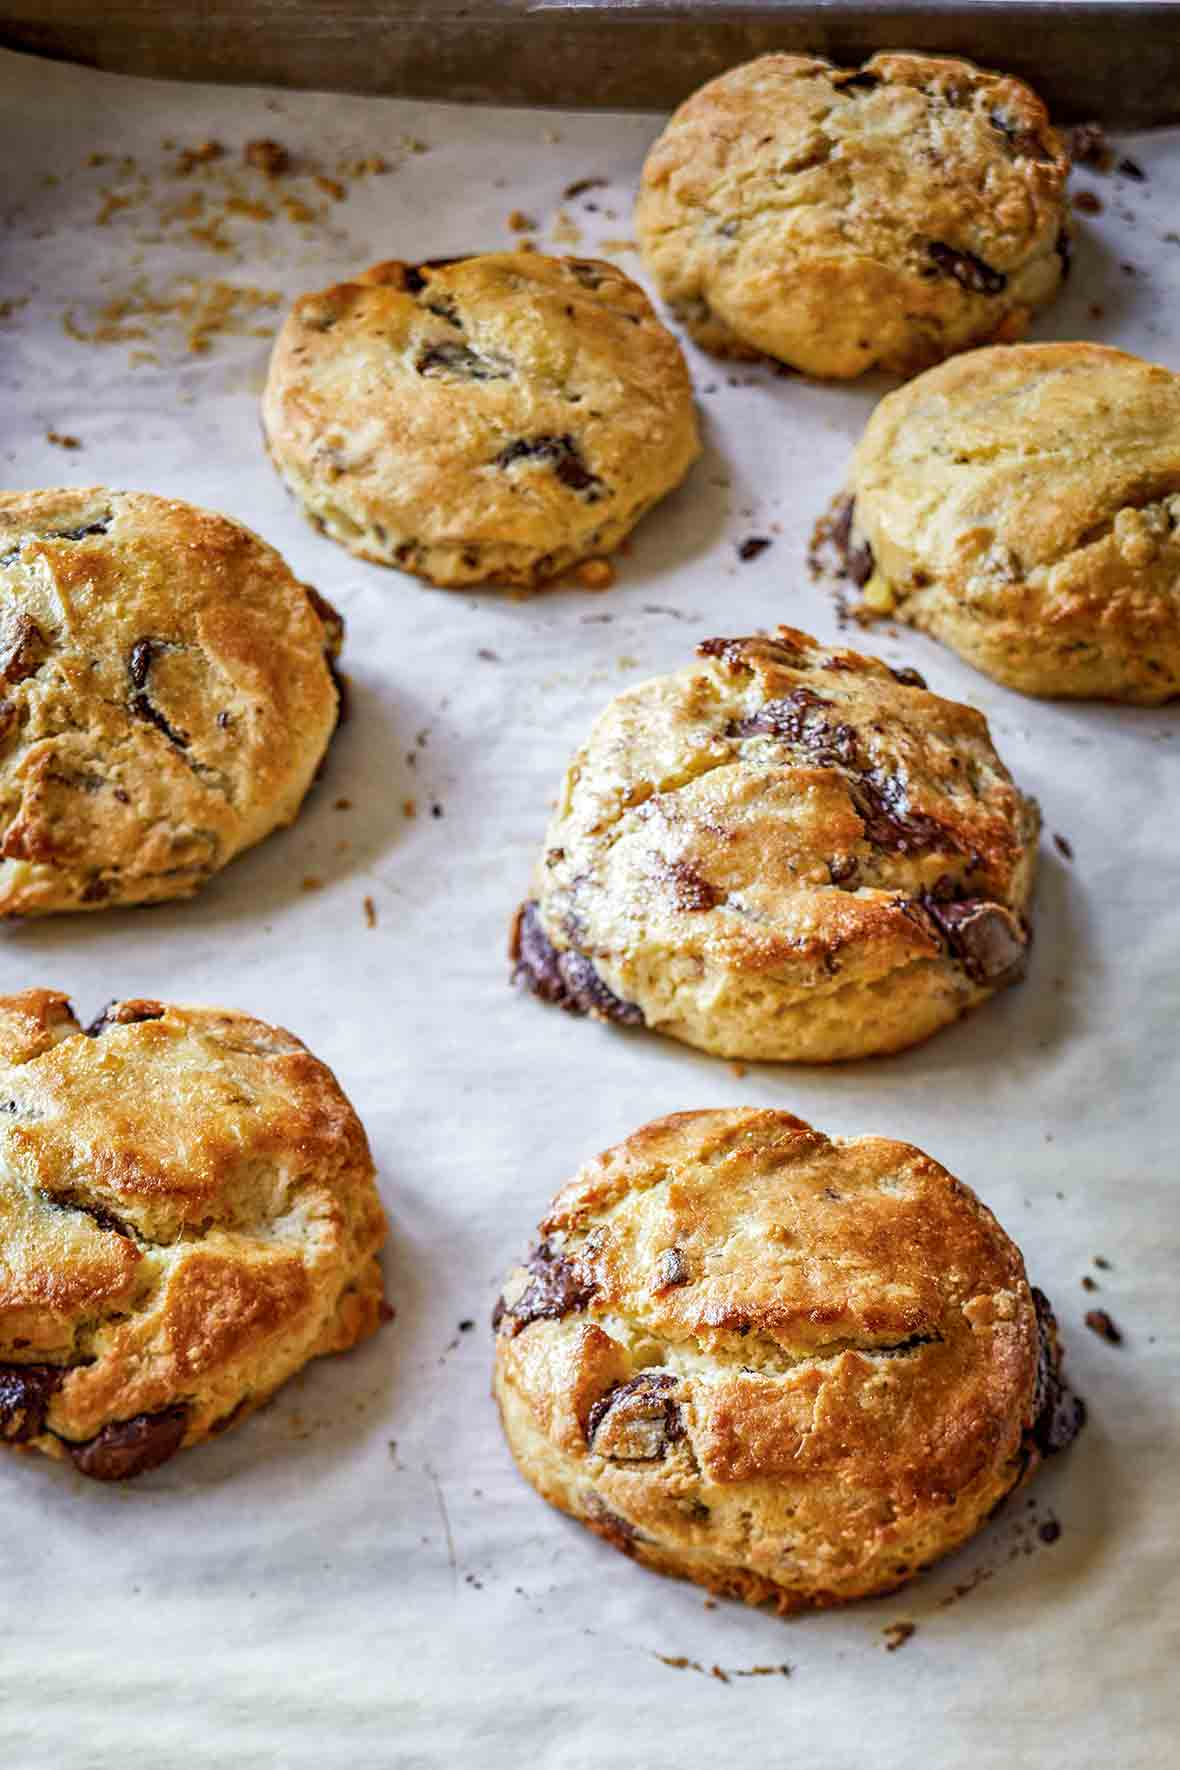 A baking sheet with seven chocolate pecan scones